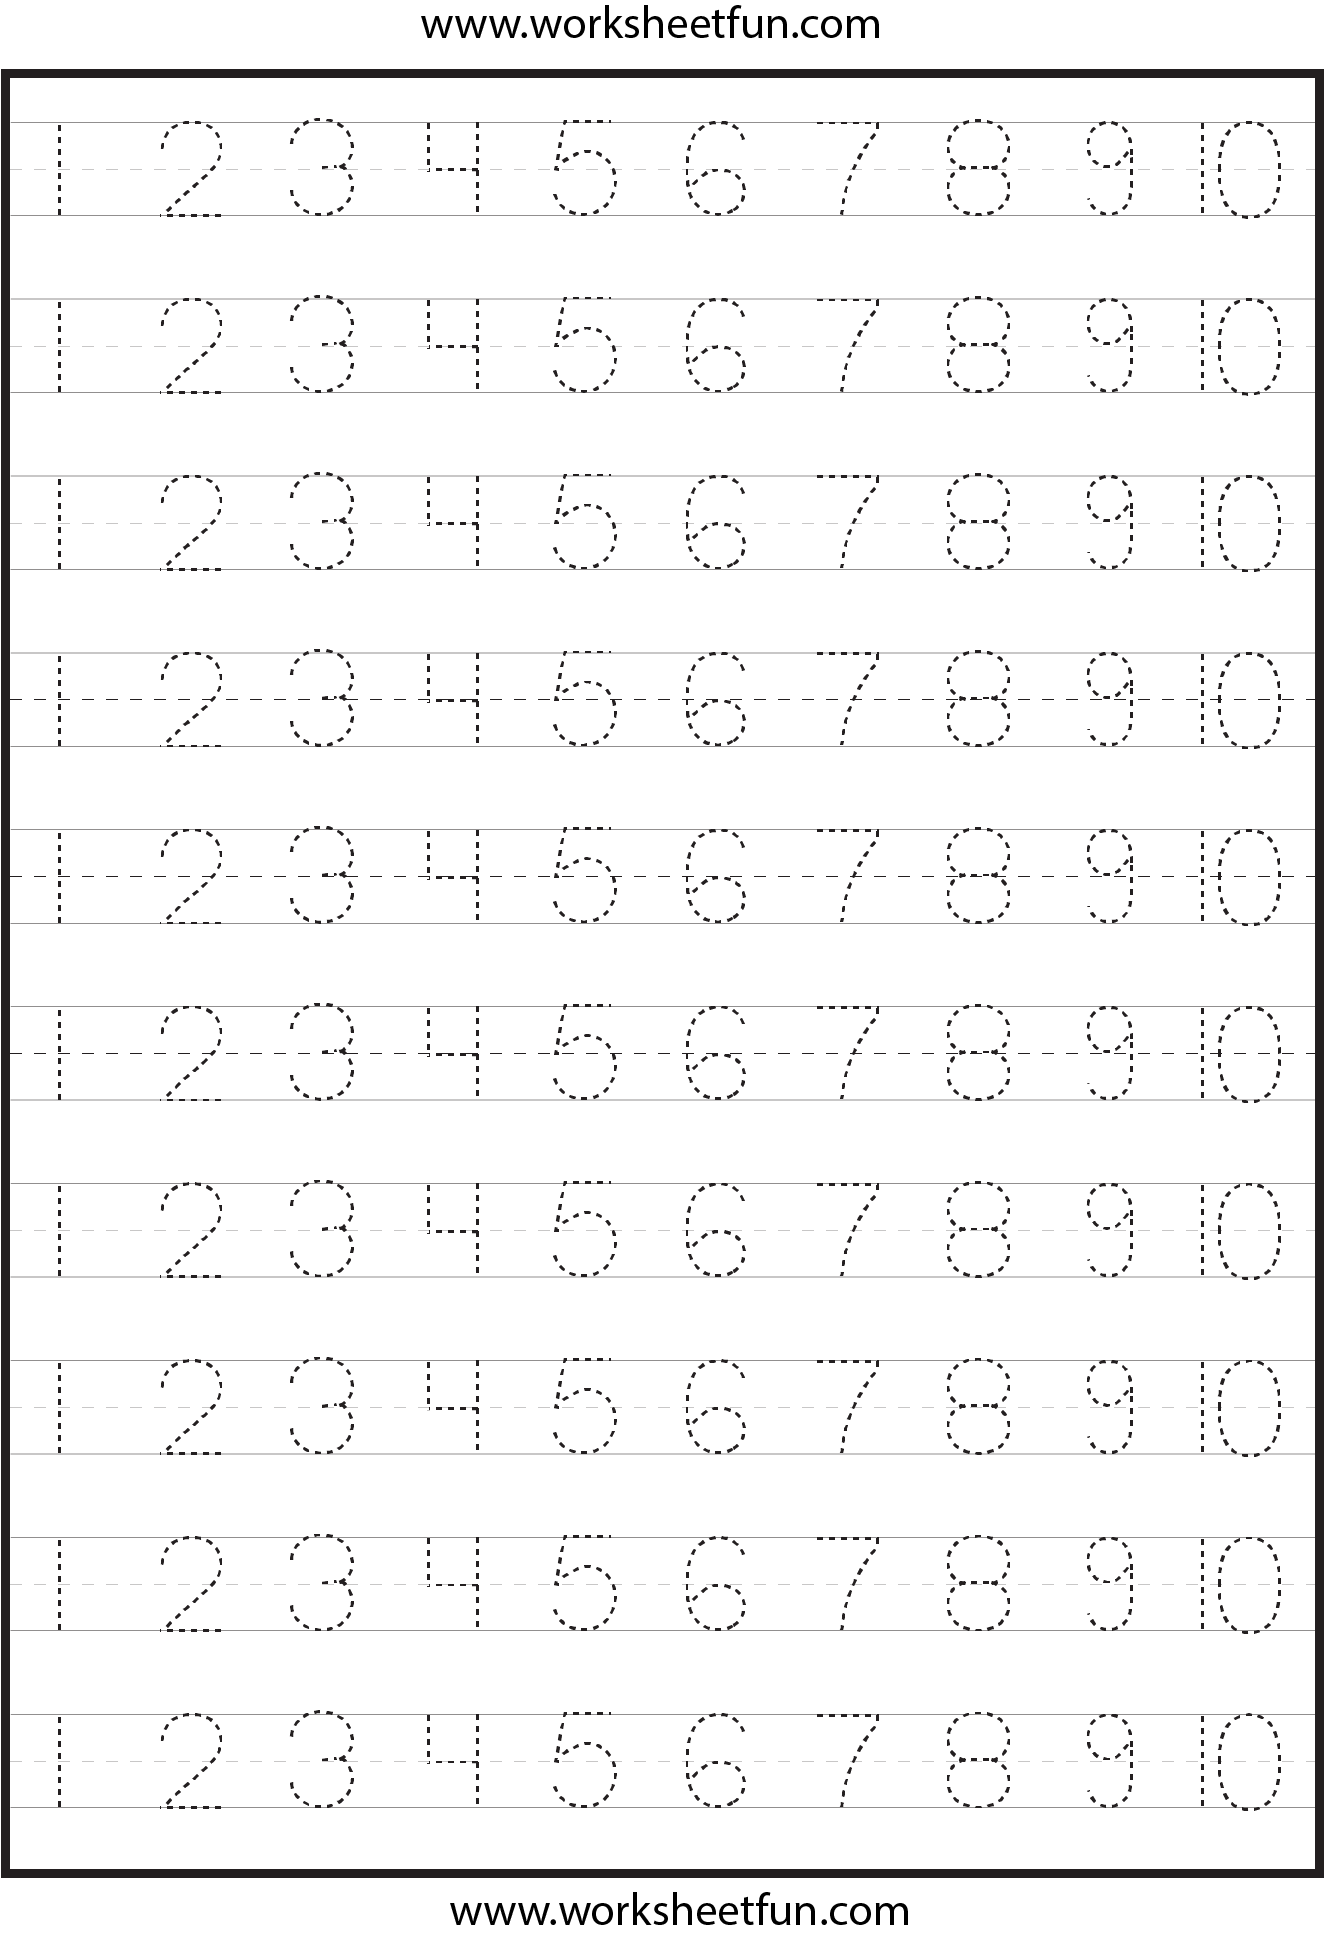 5 Best Images of Printable Tracing Numbers 1 100 - Tracing ...